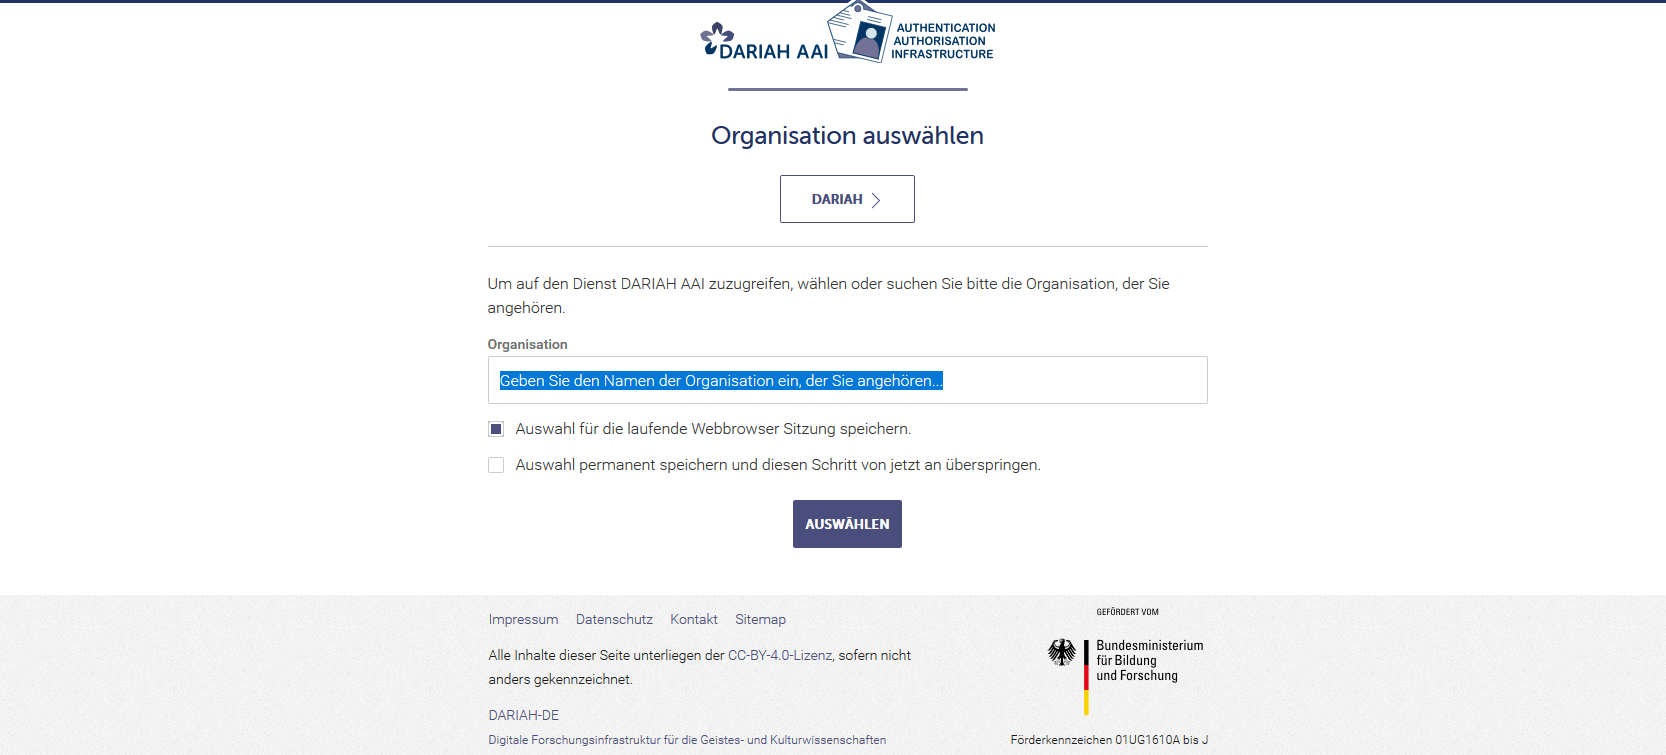 docs/images/Annotate_2_Einwahl_Organisation.png